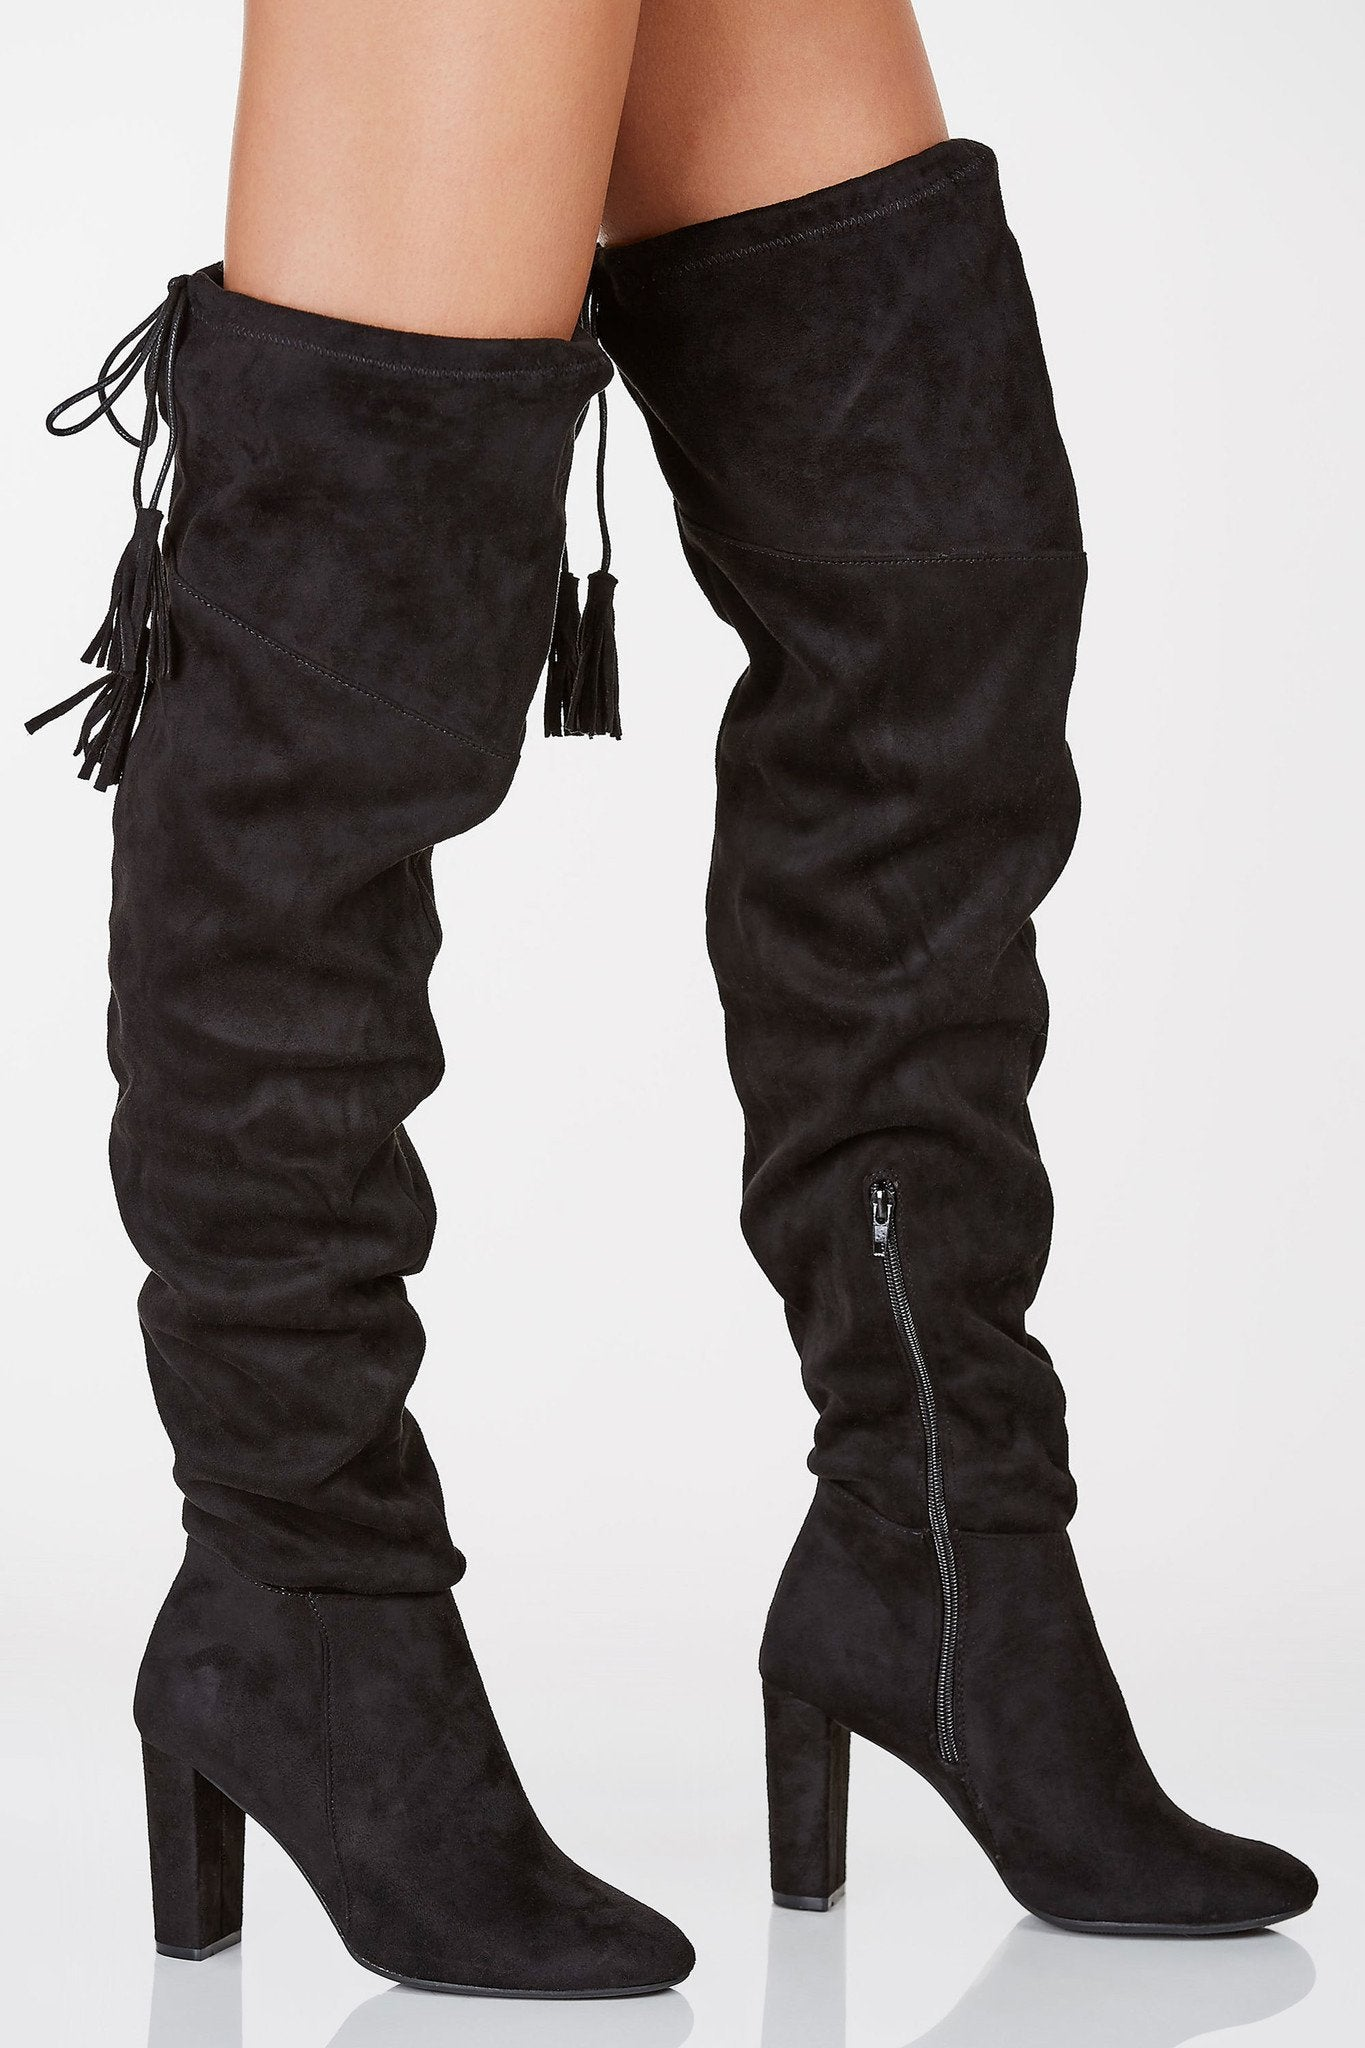 Suede finish thigh high boots with soft rounded toe. Block heels with side zip closure and tassel detailing.